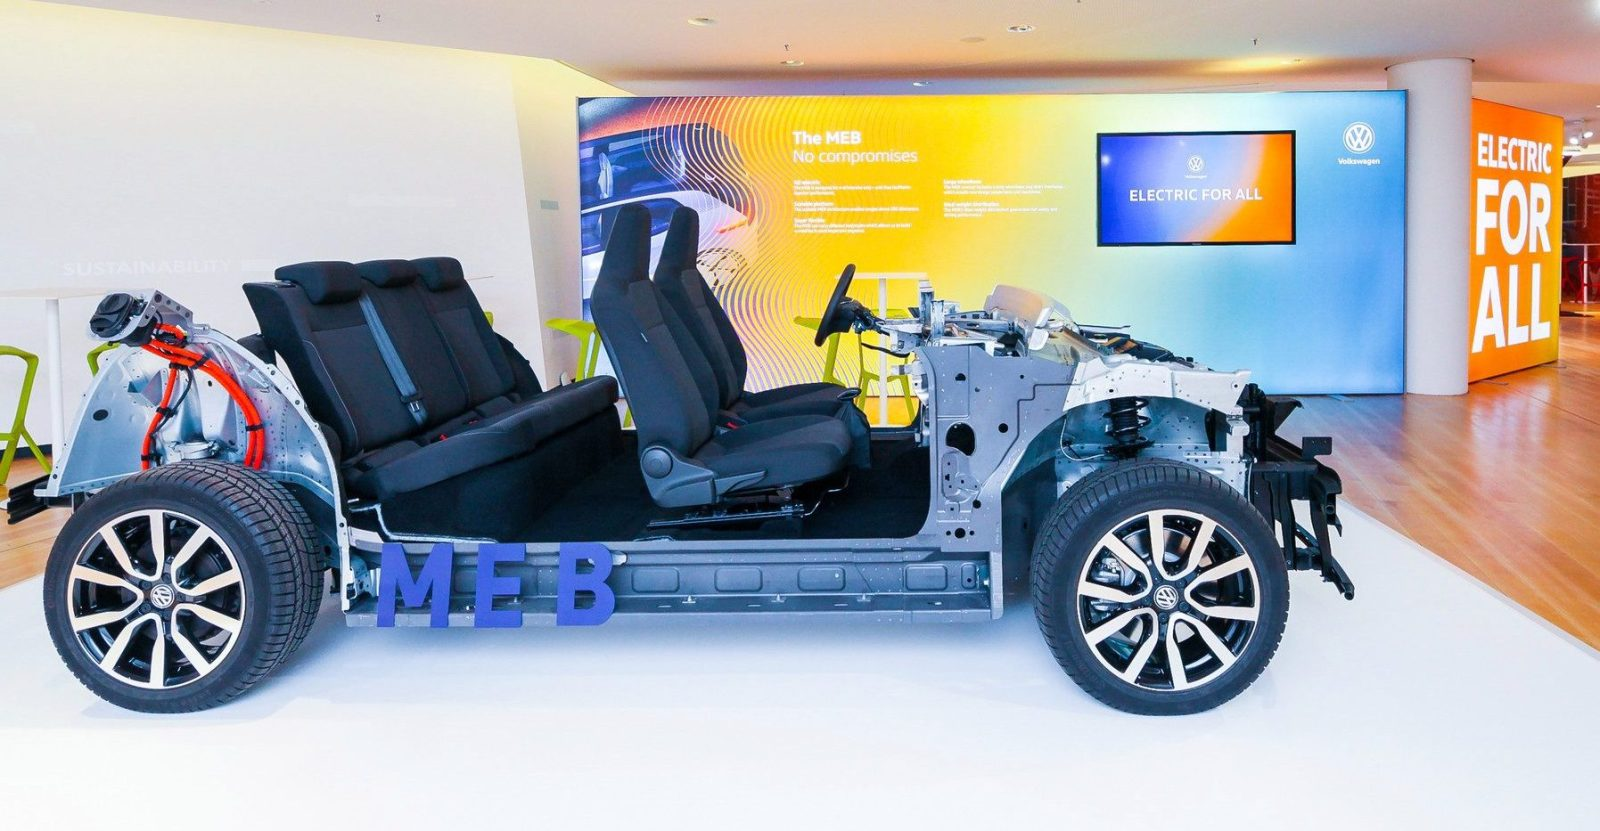 Vw Unveils Meb Platform For Electric Vehicles Launches All Campaign To Have Affordable Evs